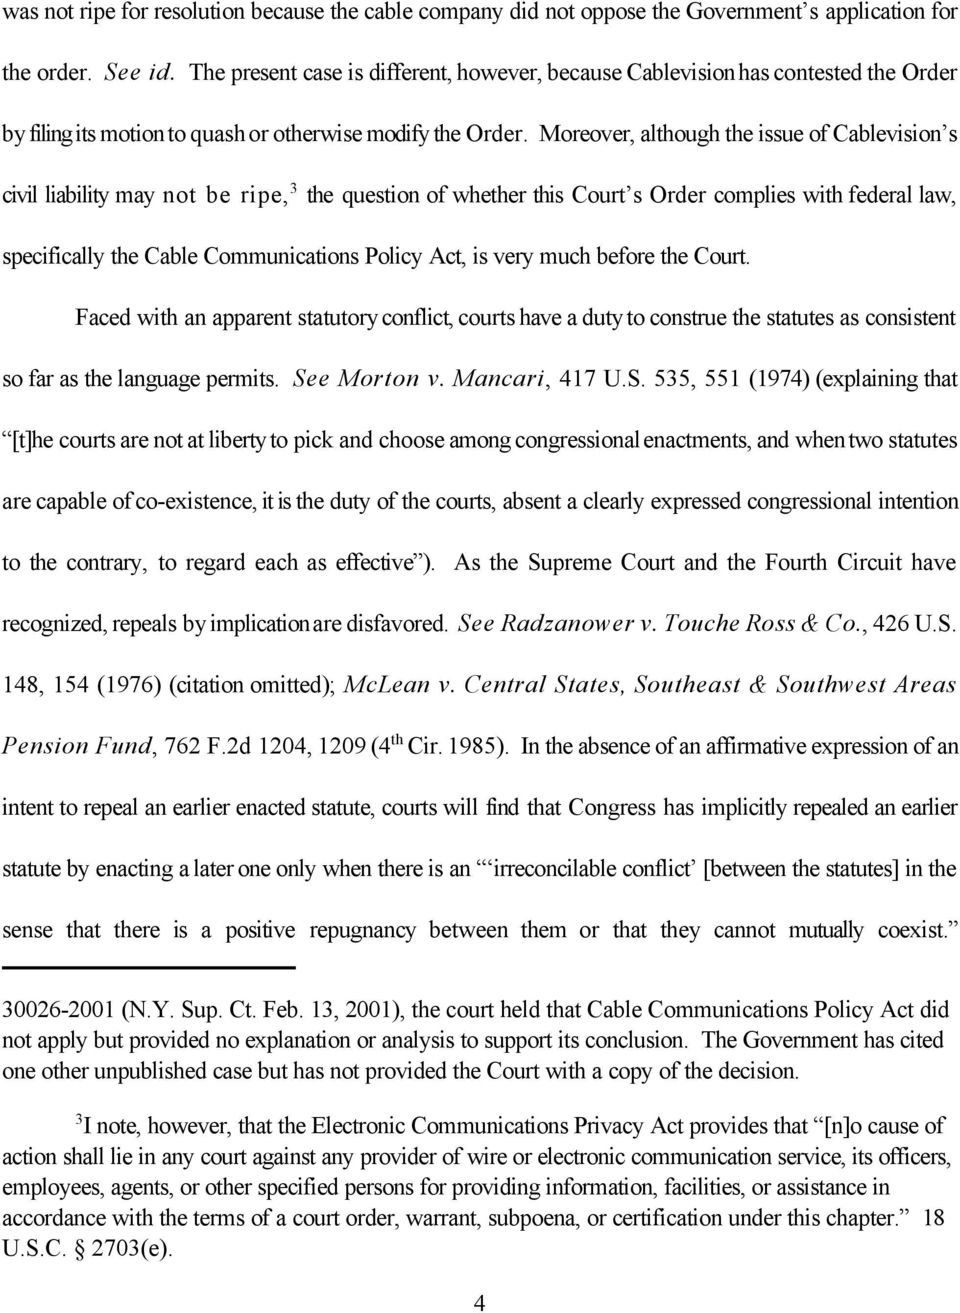 Moreover, although the issue of Cablevision s civil liability may not be ripe, 3 the question of whether this Court s Order complies with federal law, specifically the Cable Communications Policy